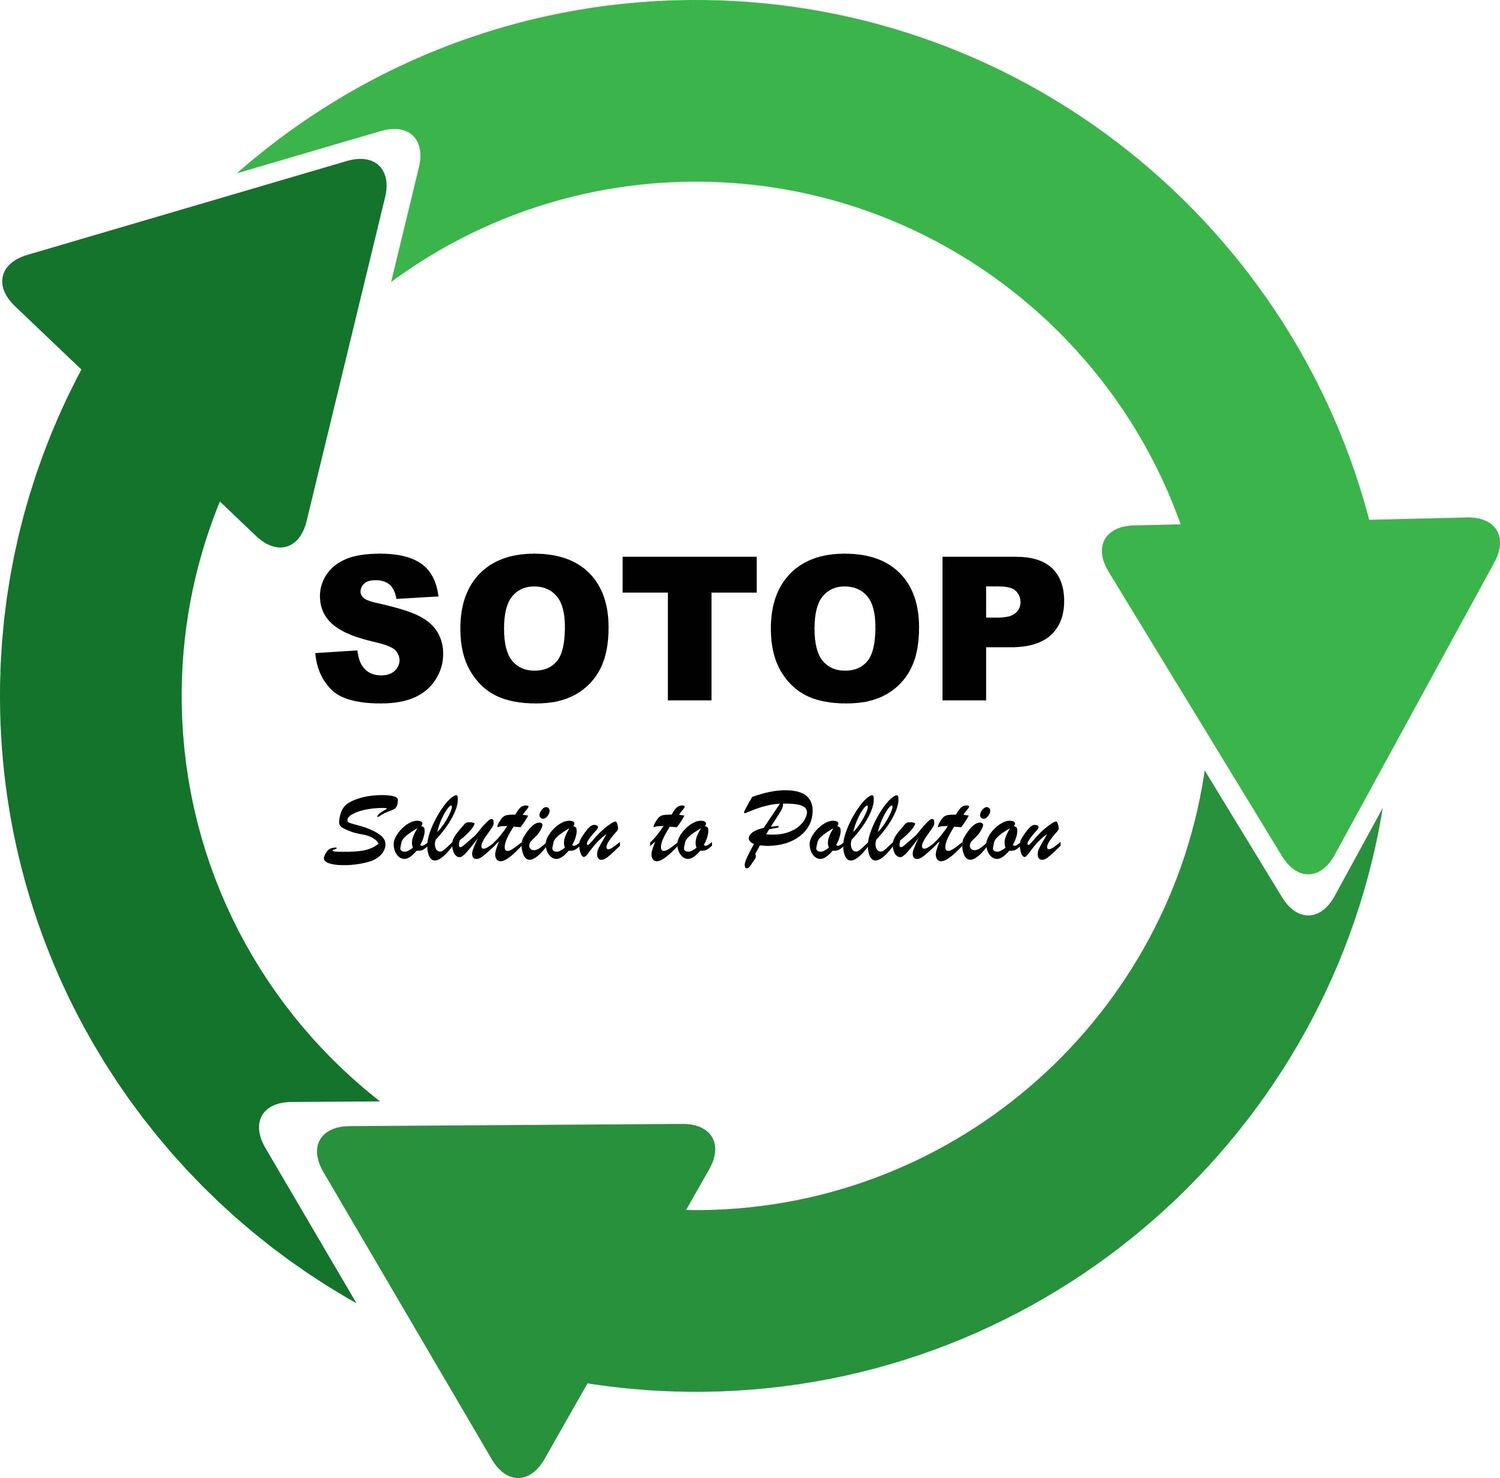 SOTOP-Recycling